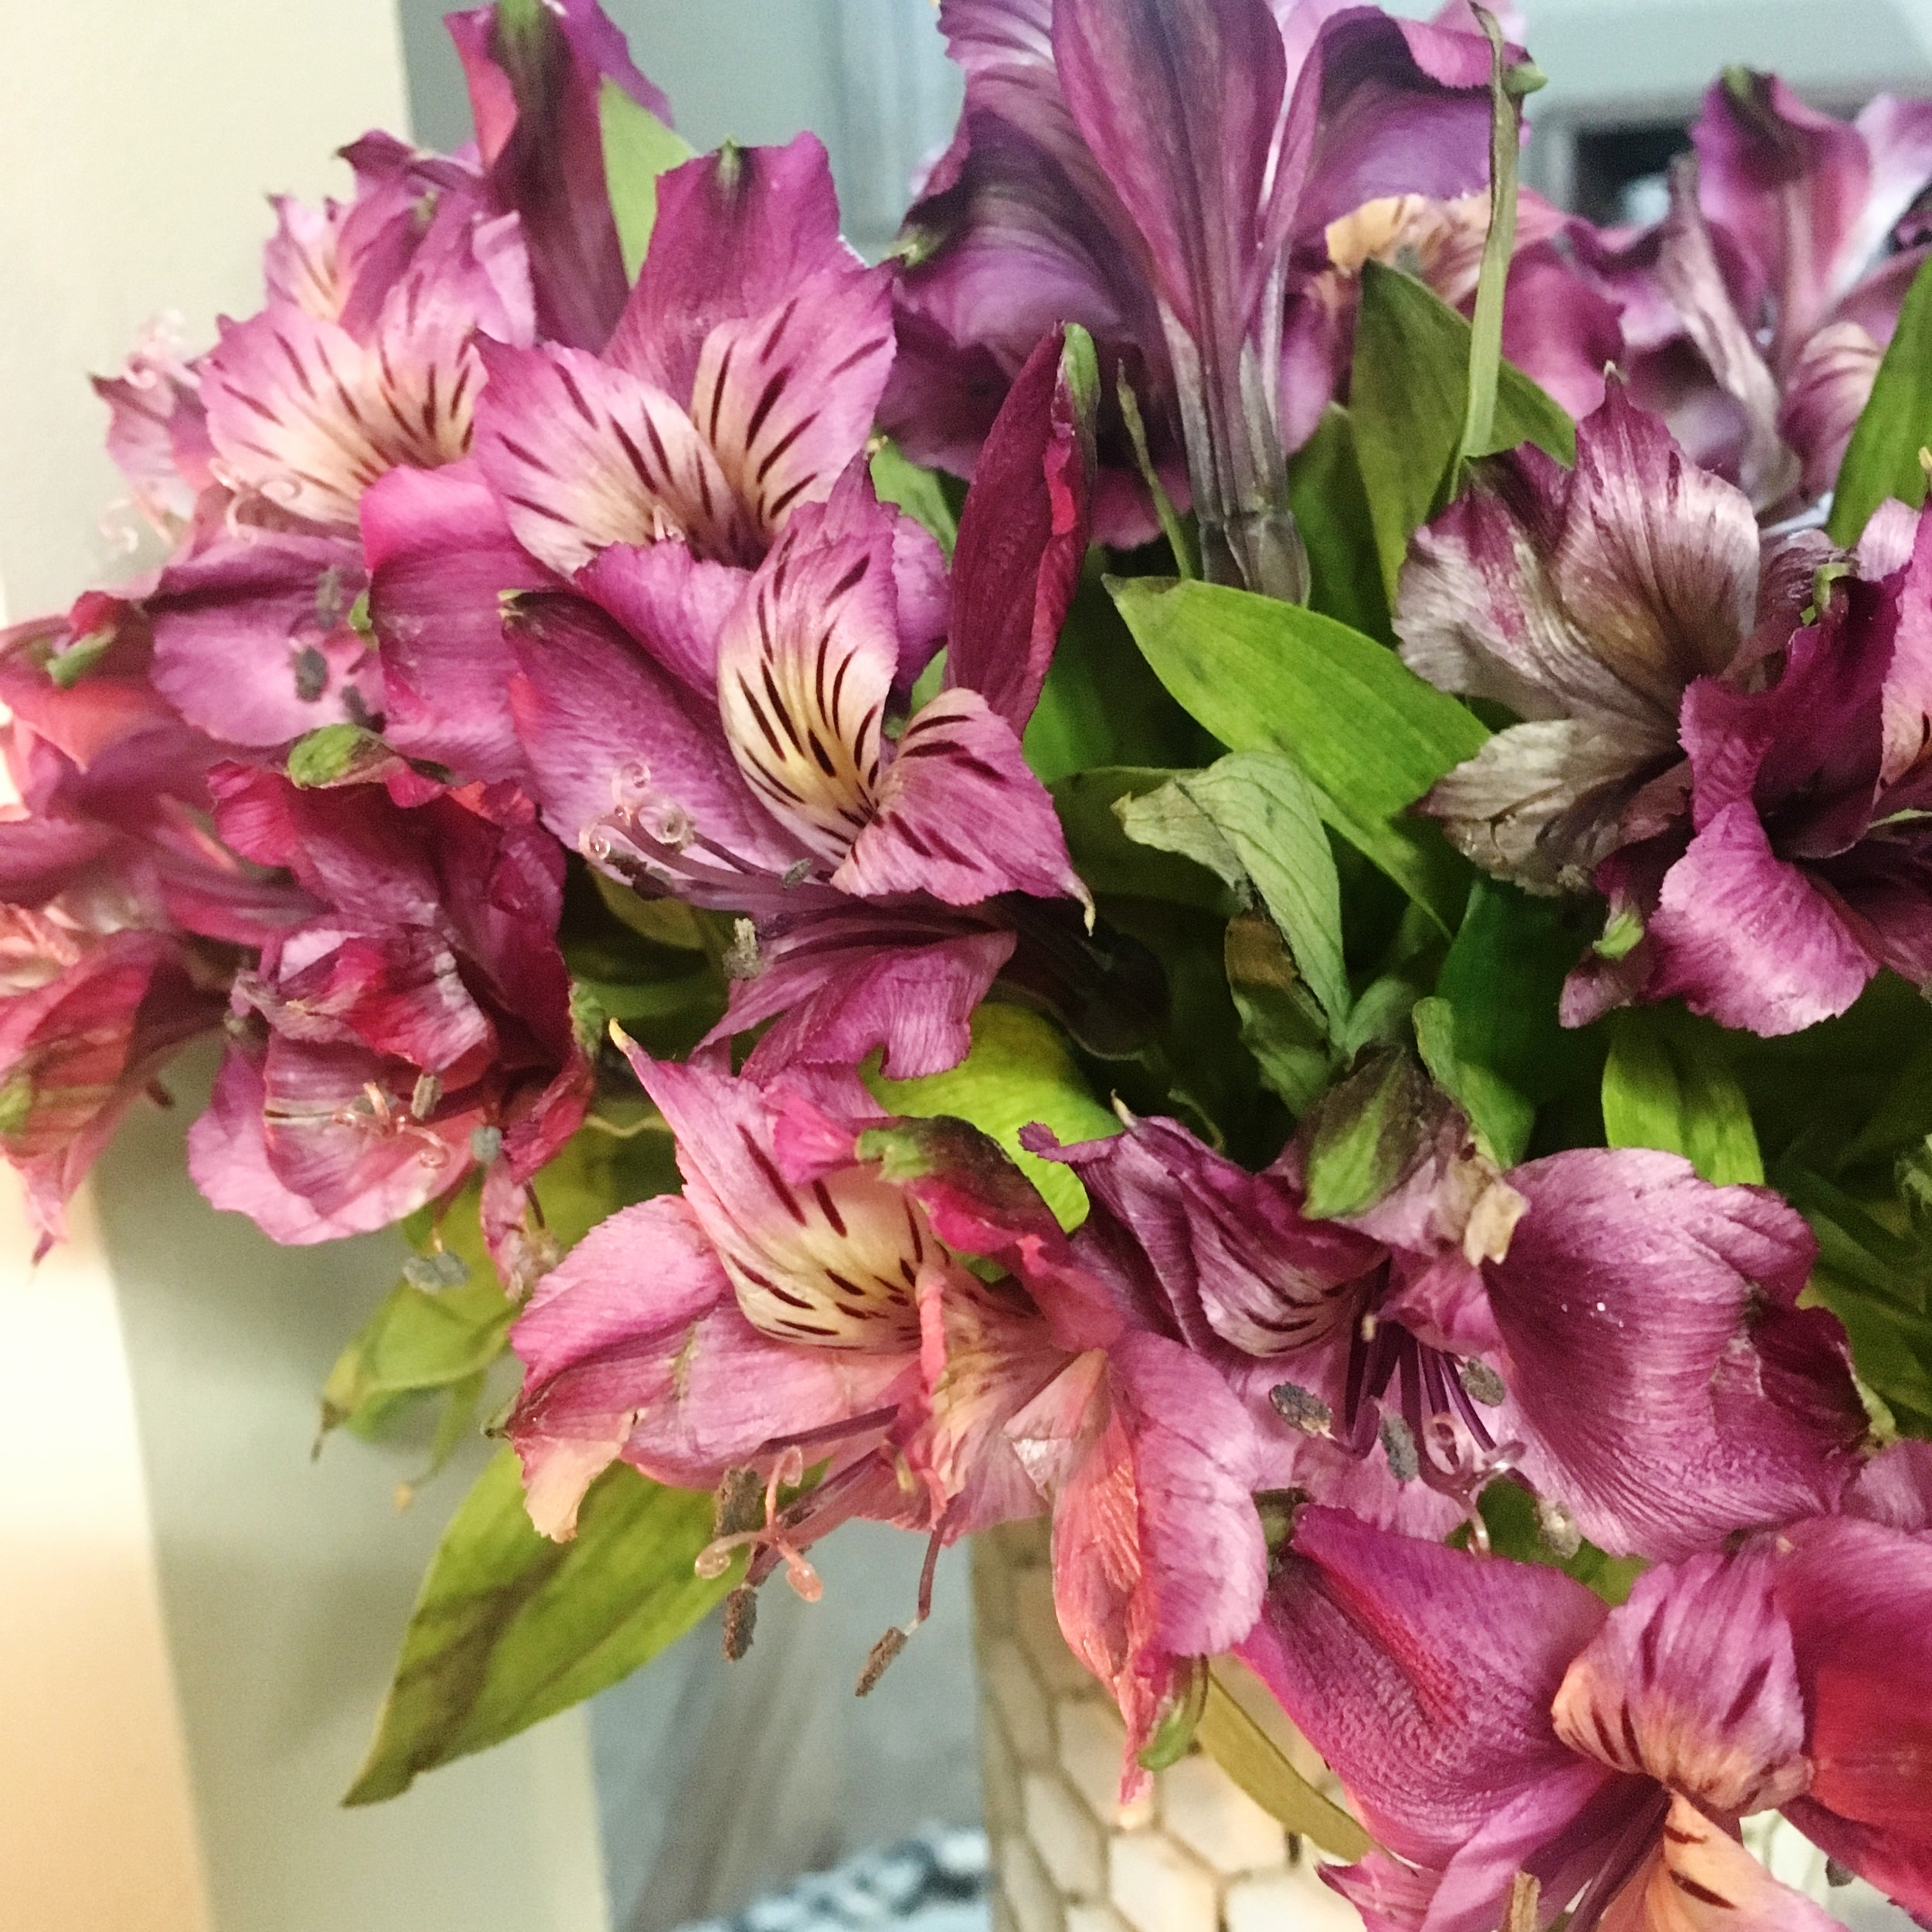 These fresh cut alstroemeria flowers are still going strong after 3 weeks!